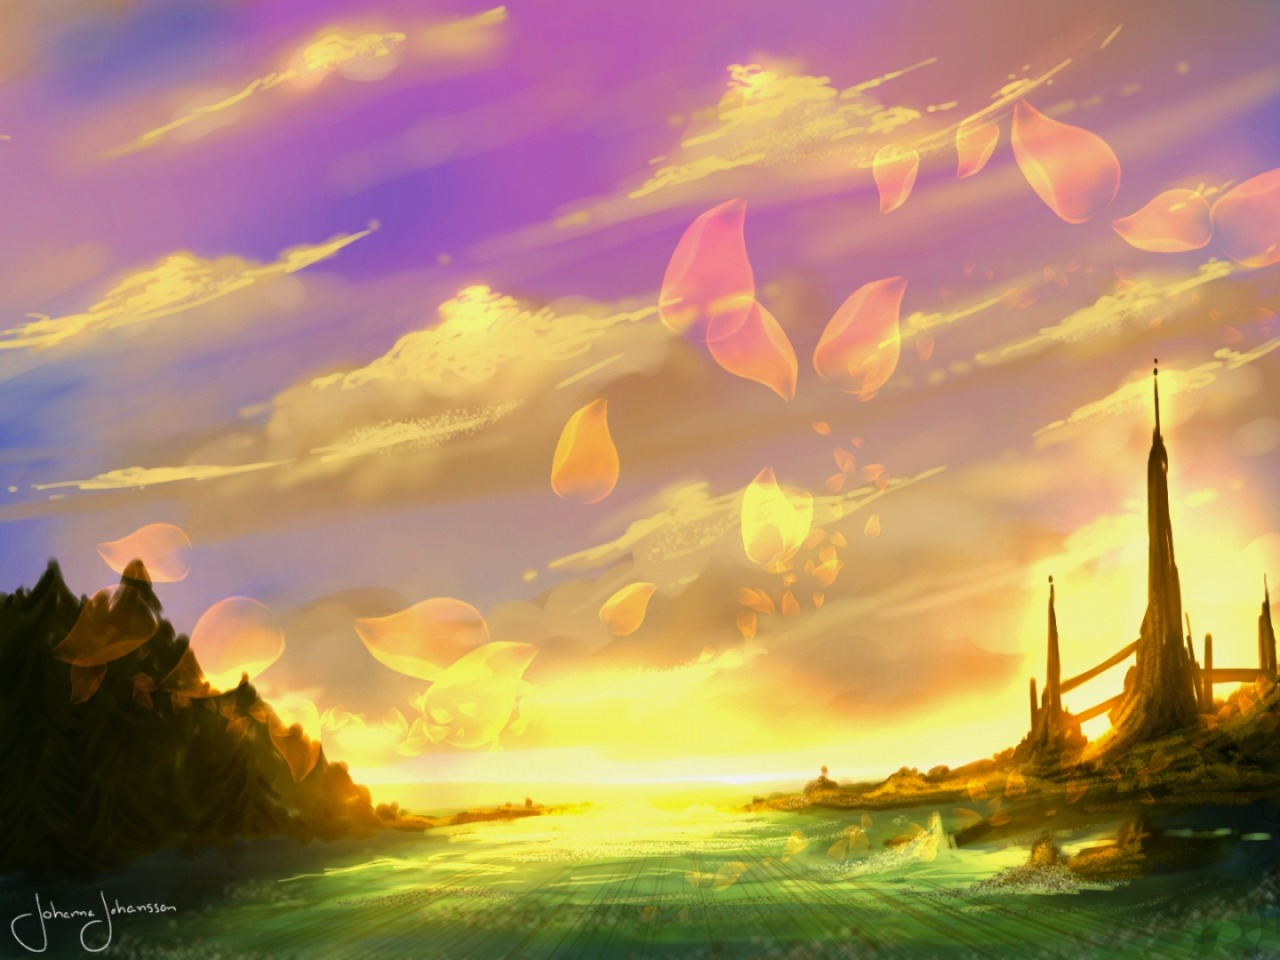 Drawn scenery vibrant Our art scenery Corner by